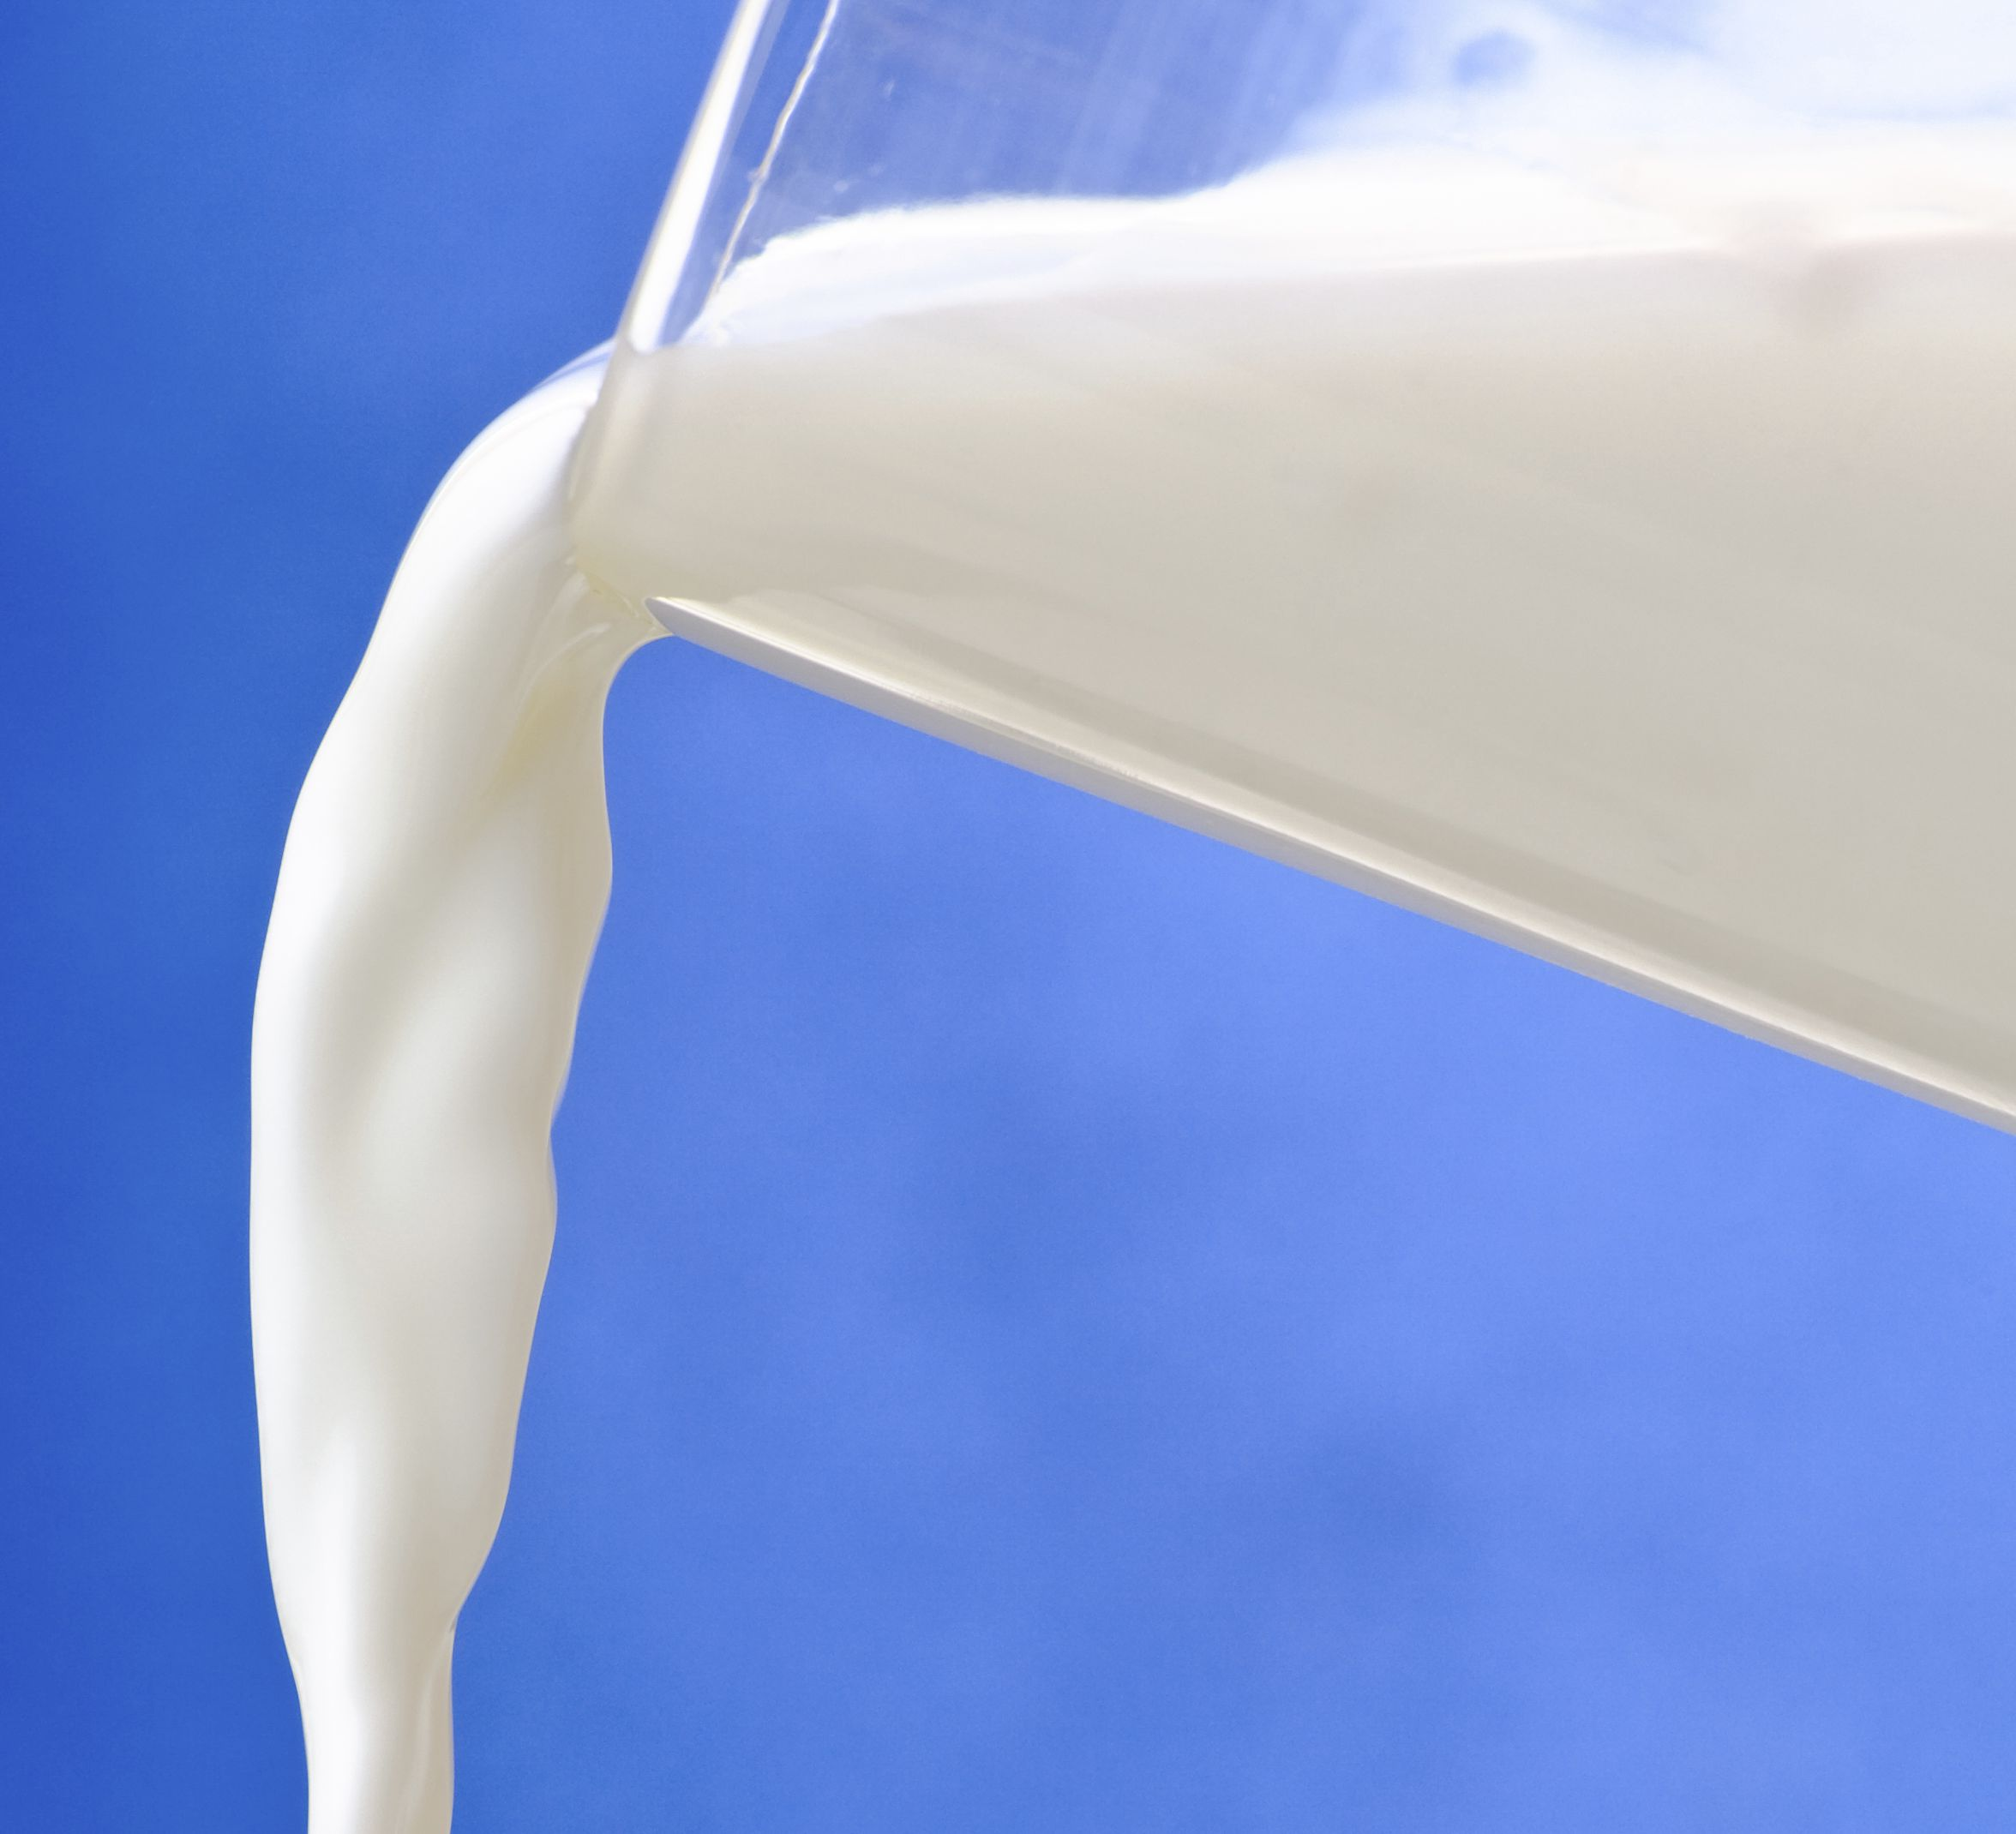 A glass of healthy milk